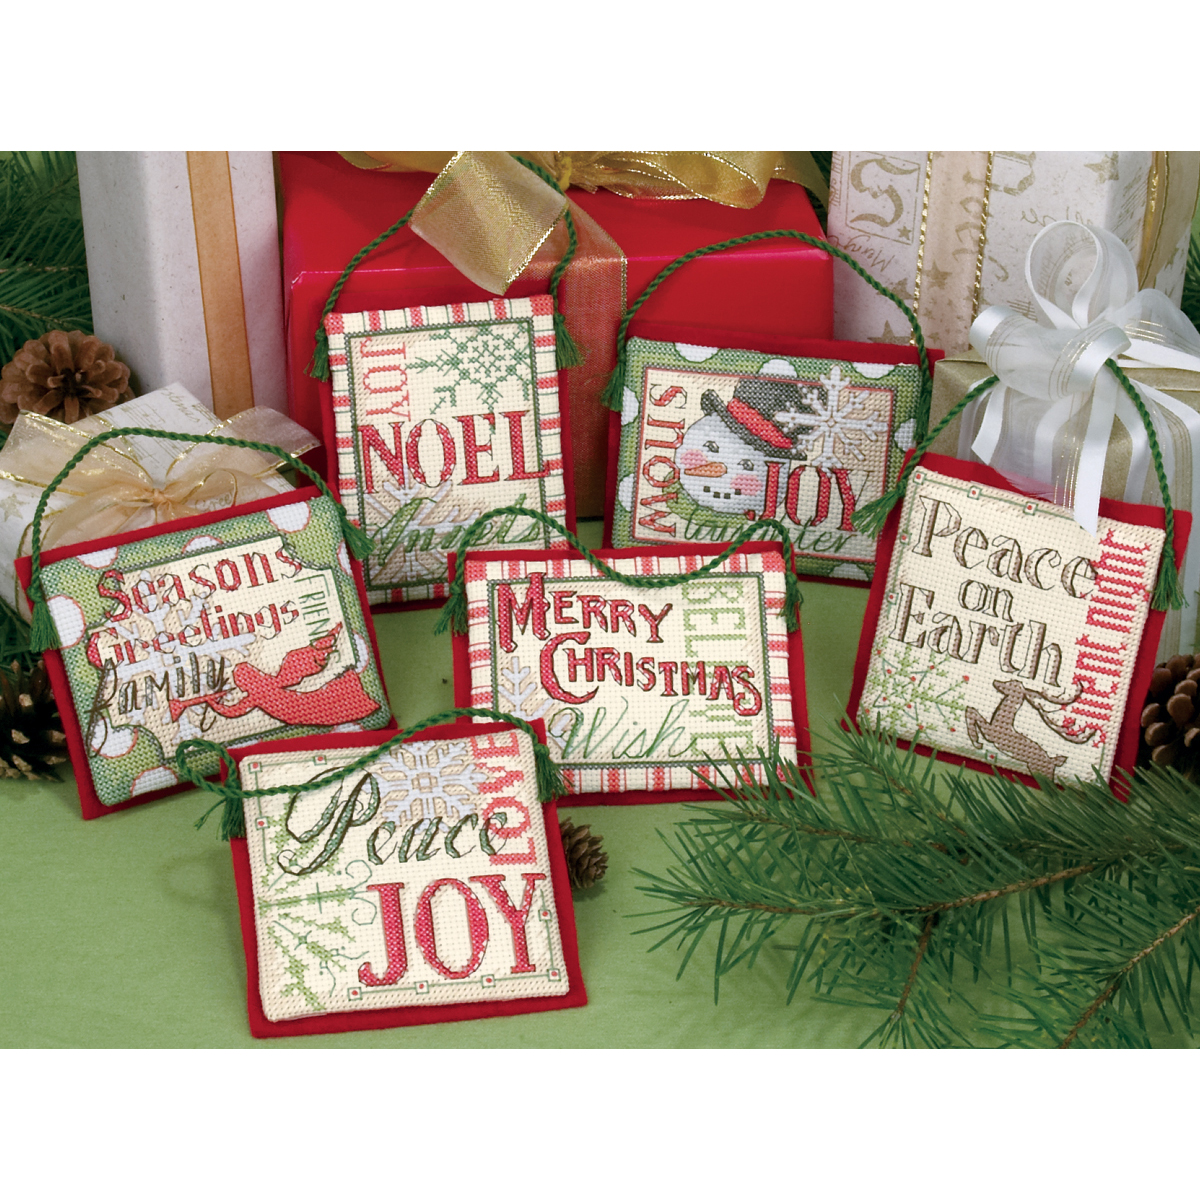 "Dimensions ""Christmas Sayings"" Ornaments Counted Cross Stitch Kit, Up To 4"", Set of 6"